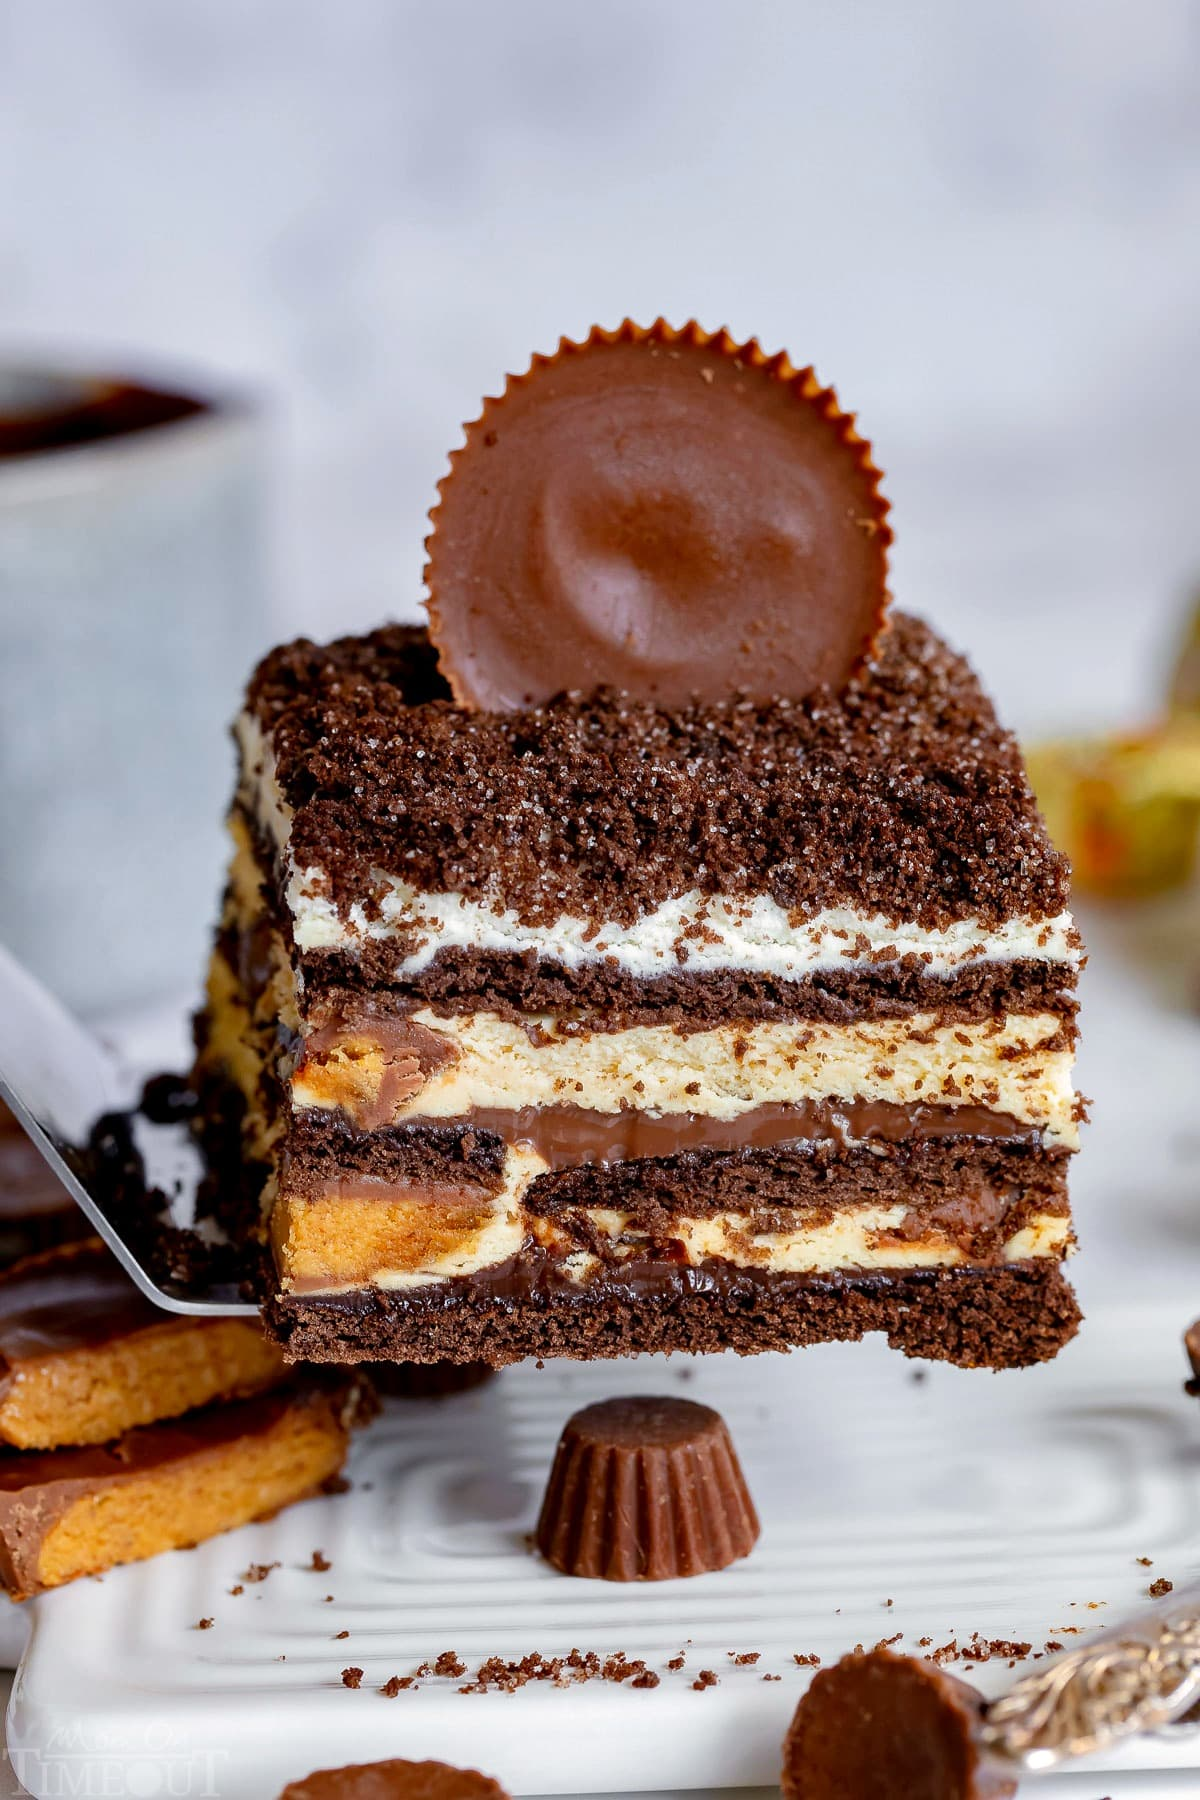 icebox-cake-chocolate-peanut-butter